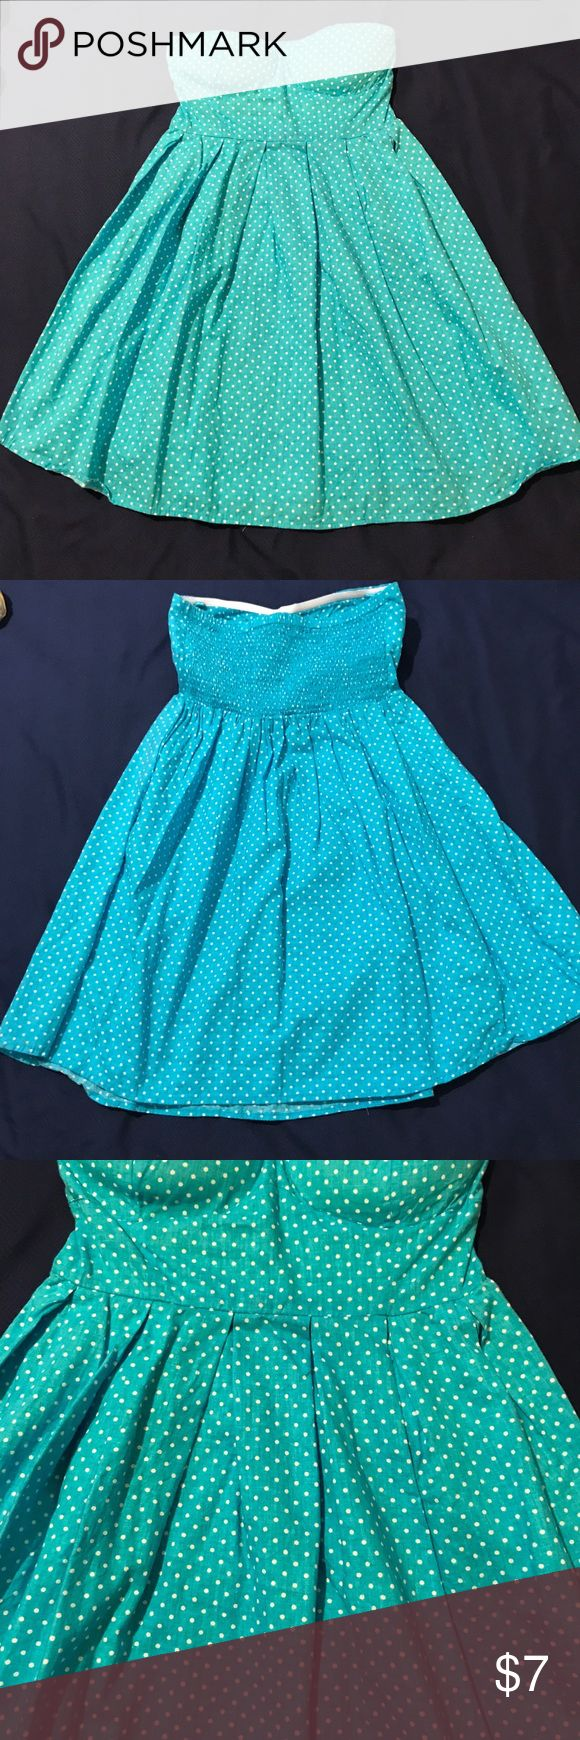 Baby blue polka dot dress Planet Gold dress, size small, color best seen on second picture, baby blue, white polka dots, padded bust area, very pretty, good used condition Planet Gold Dresses Strapless